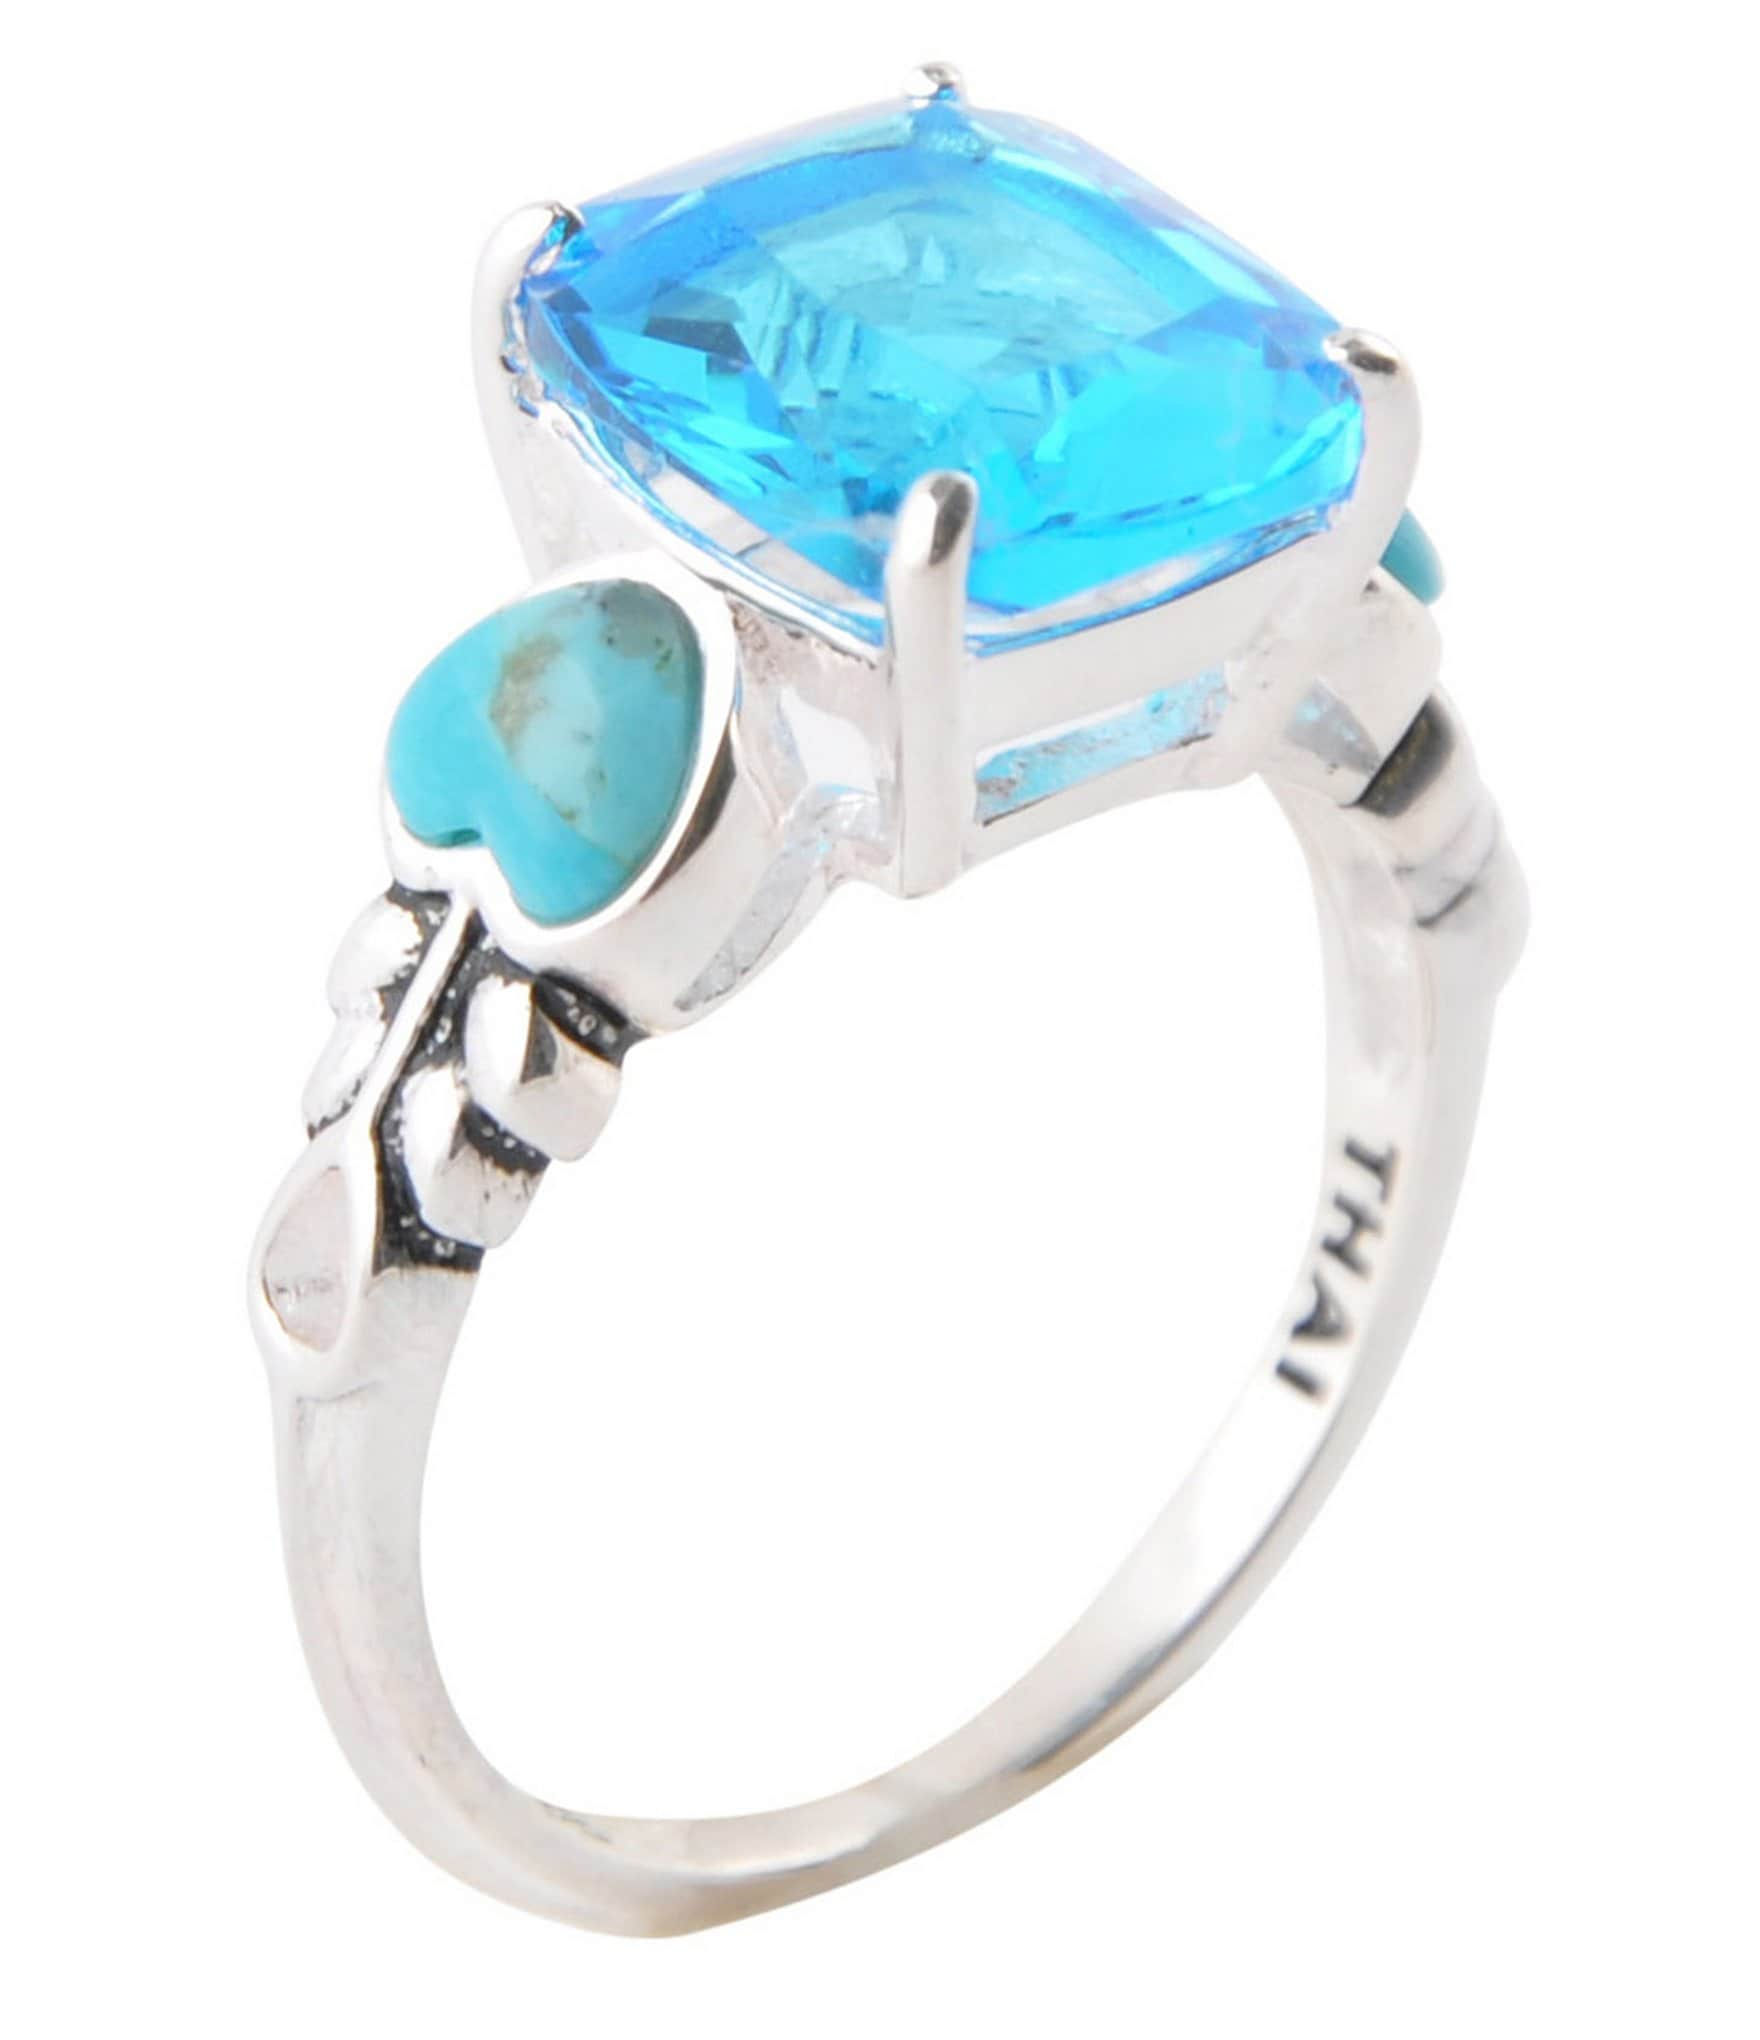 reece size salinas product stone gold number ring of turquoise no image rose rings solid jewelry